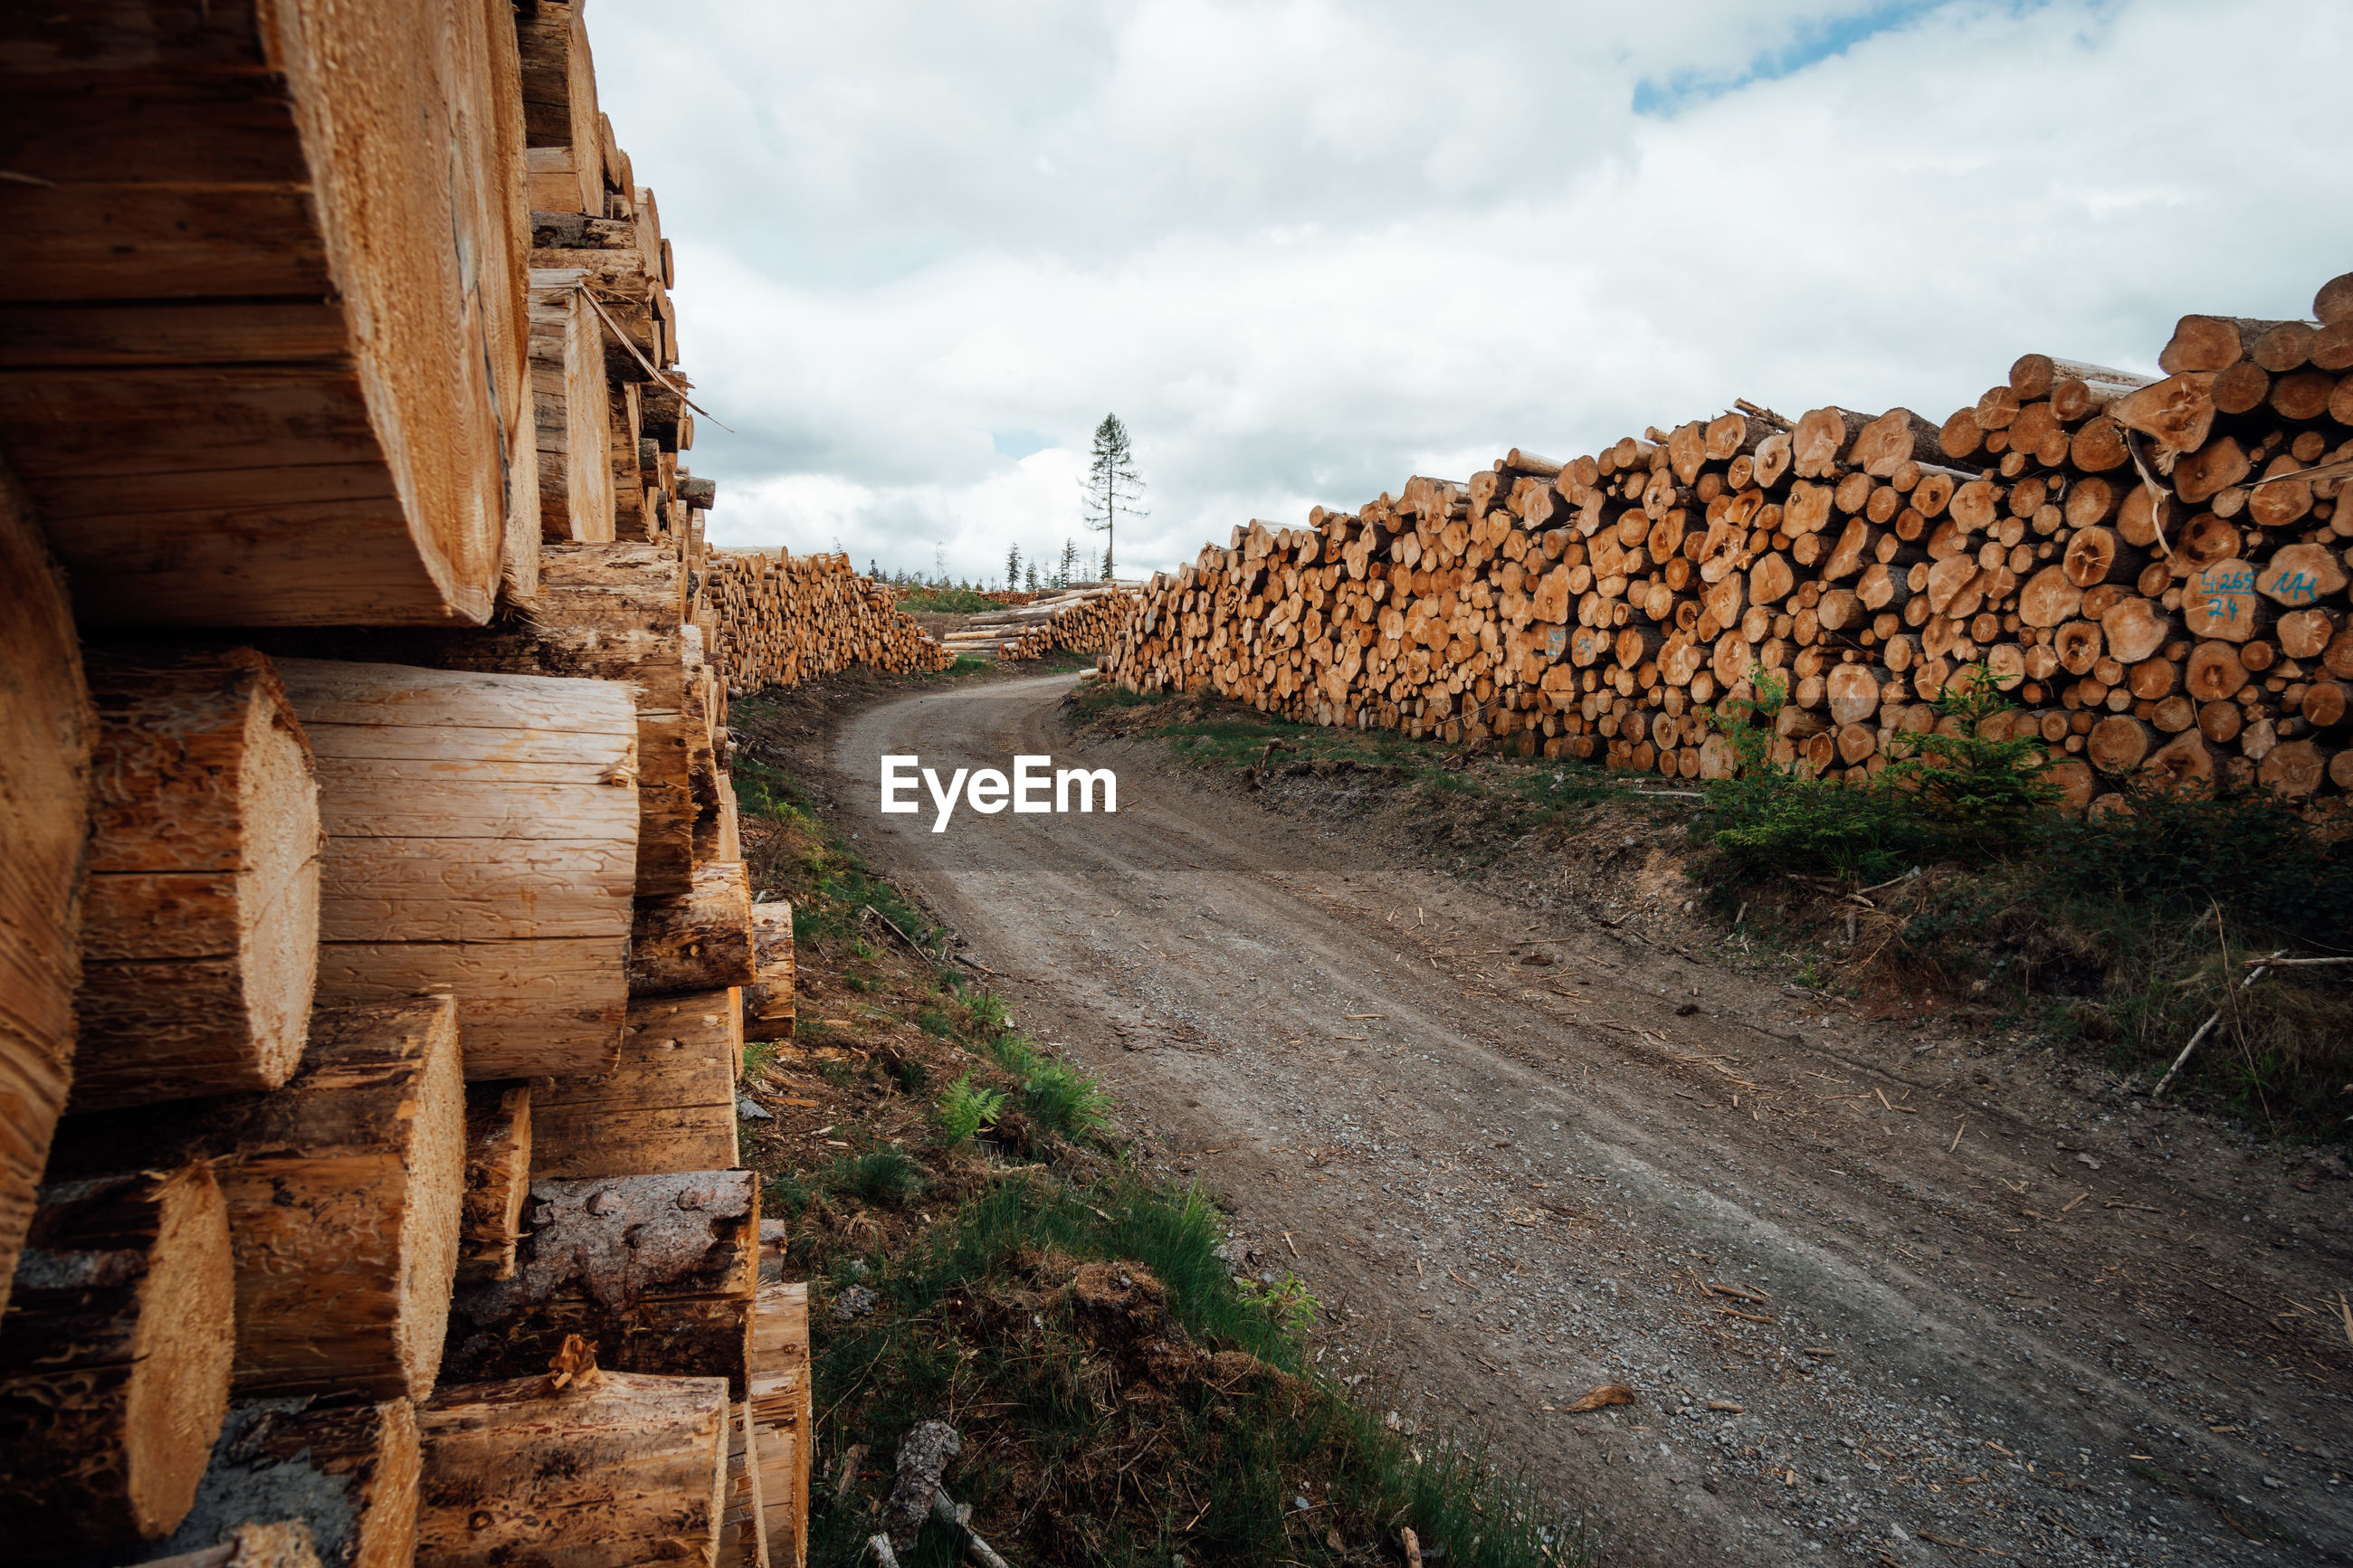 VIEW OF LOGS ON ROAD